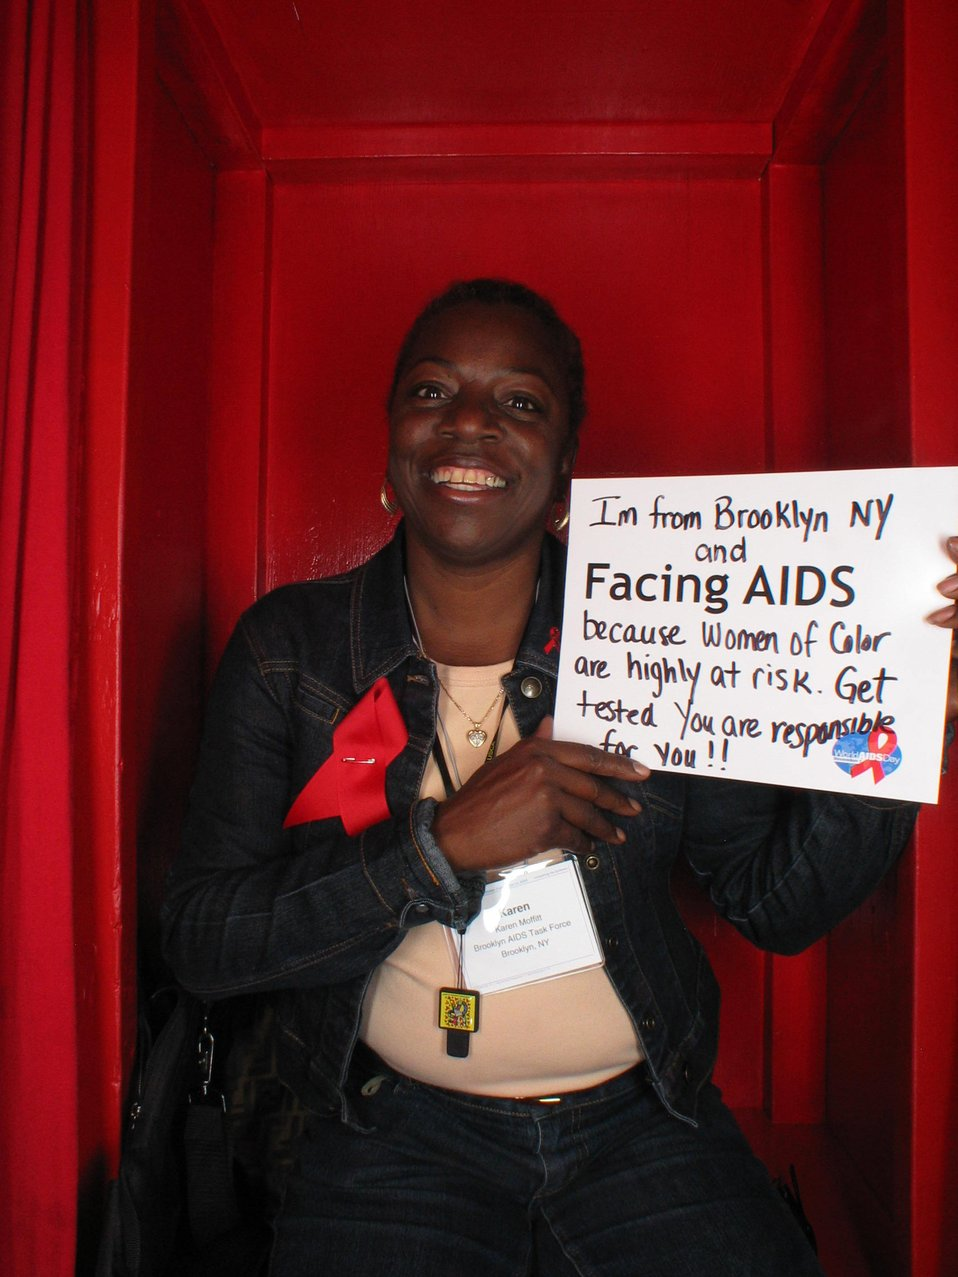 I am from Brooklyn NY and Facing AIDS because Women of Color are highly at risk. Get tested. You are responsible for you.